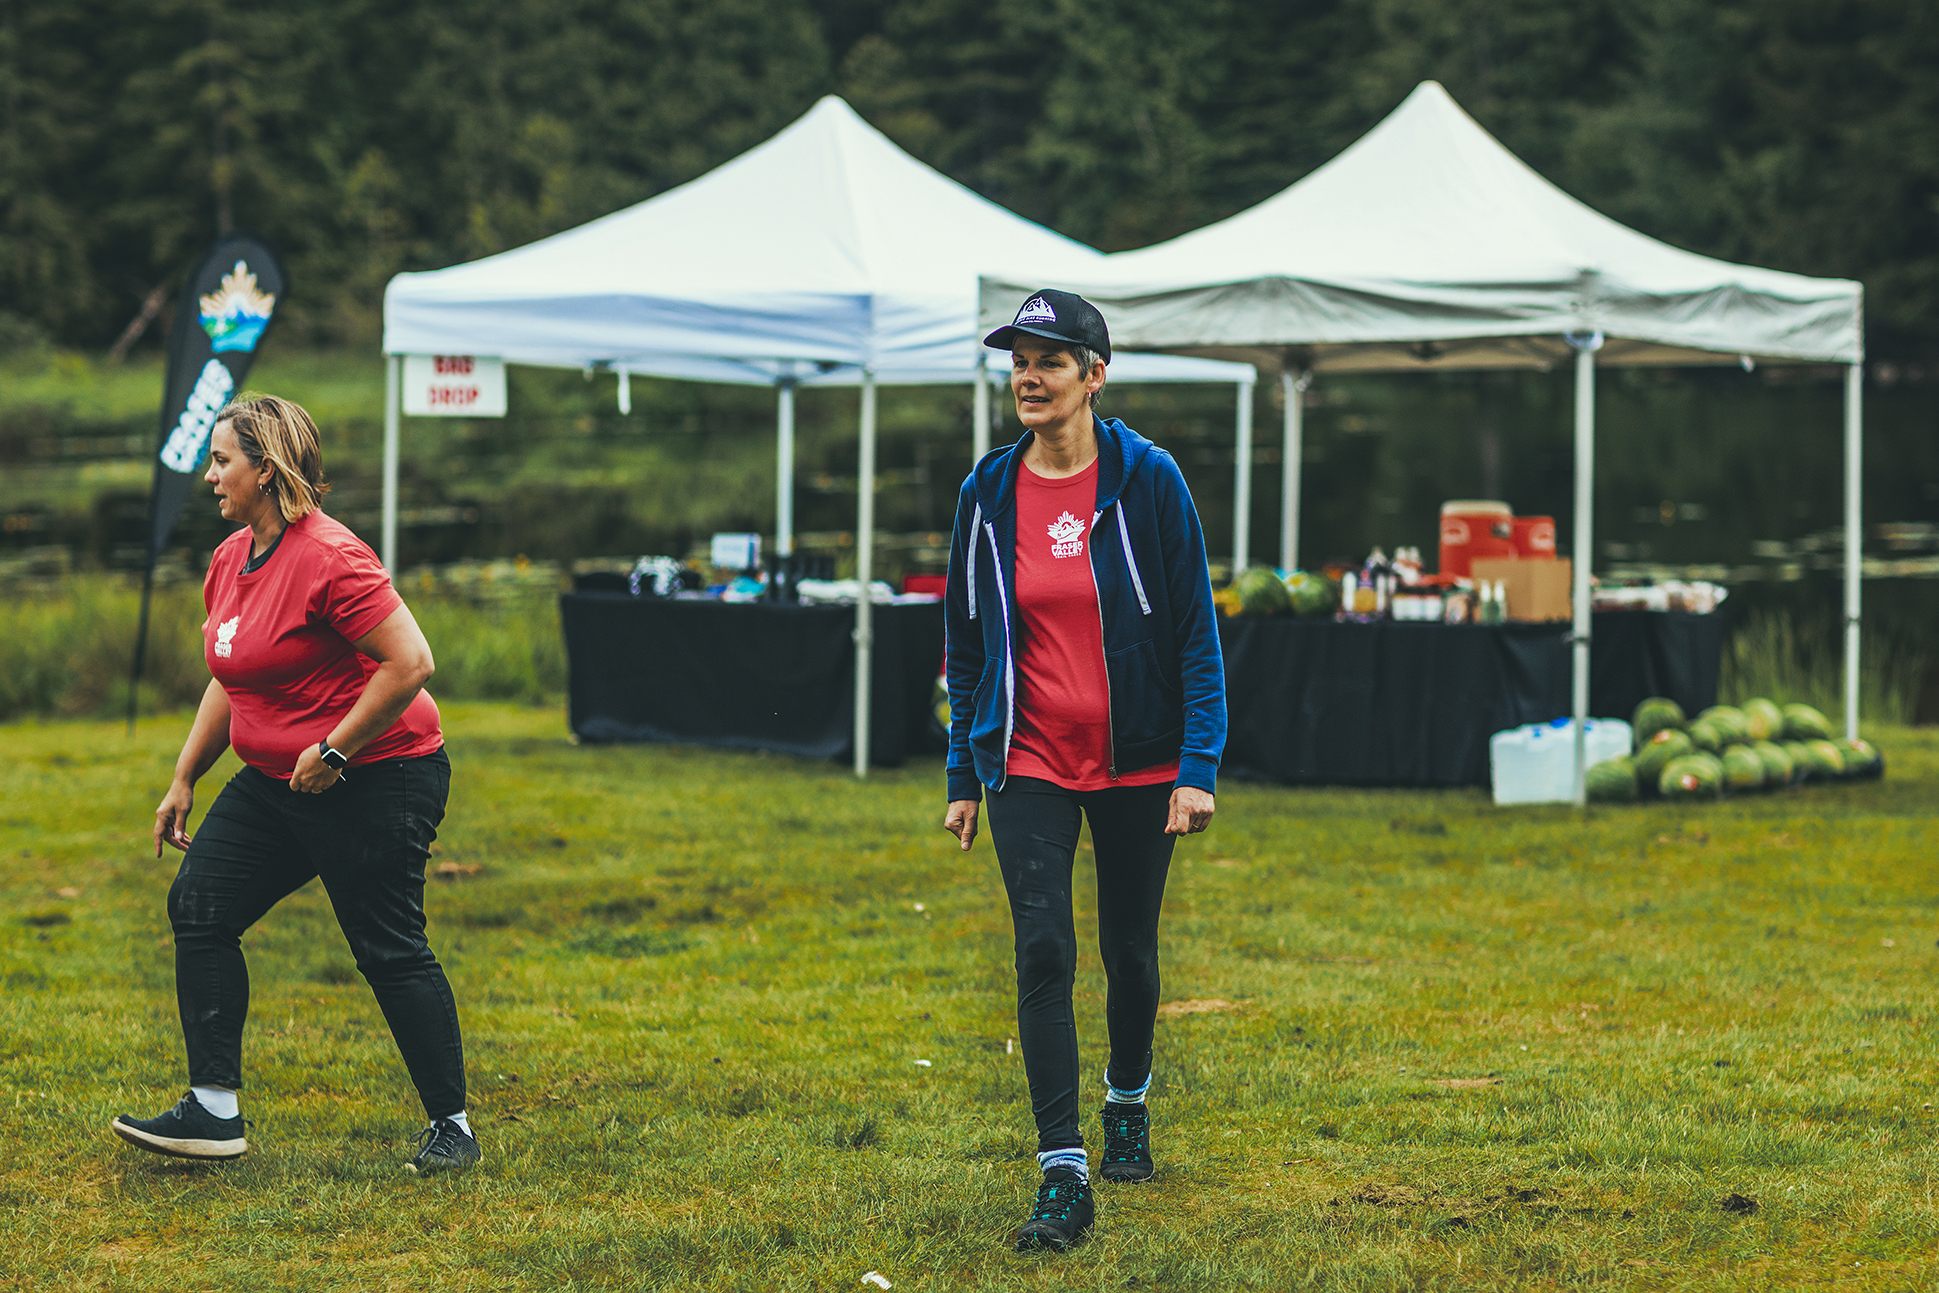 Fraser Valley Trail Races - Bear Mountain - IMG_1178 by Brice Ferre Studio - Vancouver Portrait Adventure and Athlete Photographer.jpg